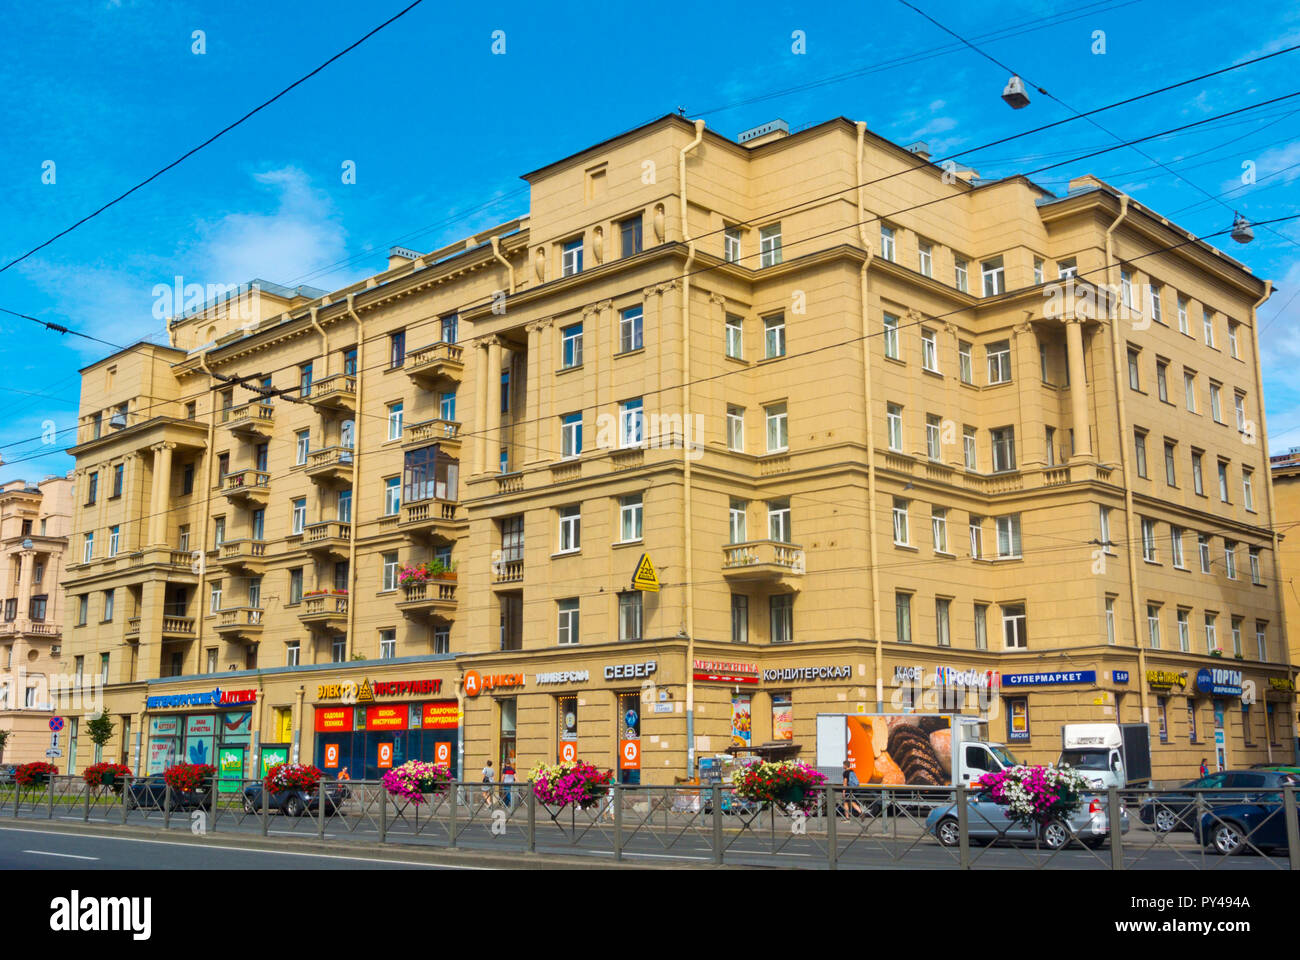 Kronshtadtskaya Ulitsa, at Avtovo metro station, Kirovsky district, Saint Petersburg, Russia - Stock Image